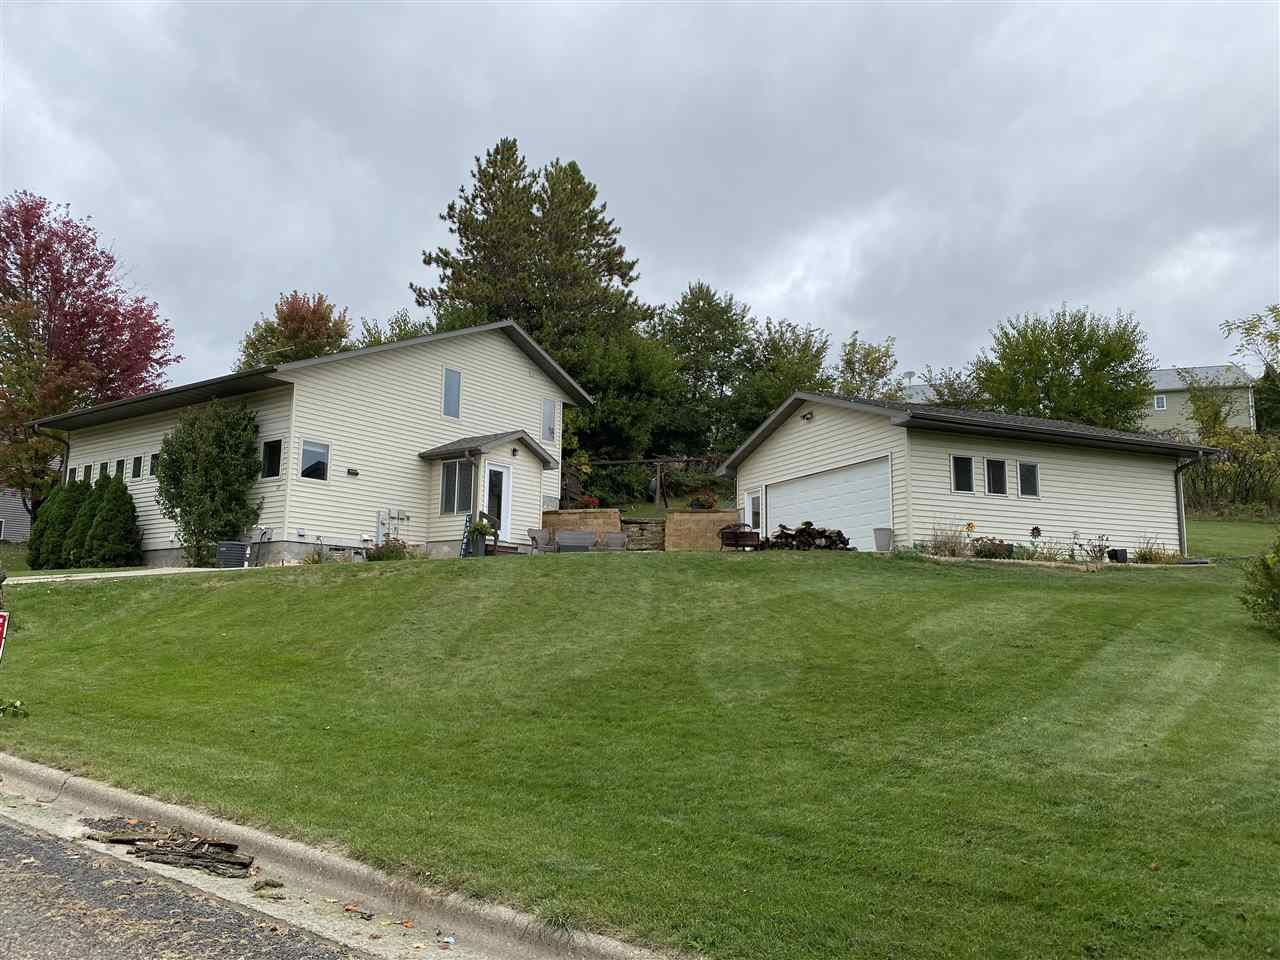 113 William St, Mineral Point, WI 53565 - #: 1894856